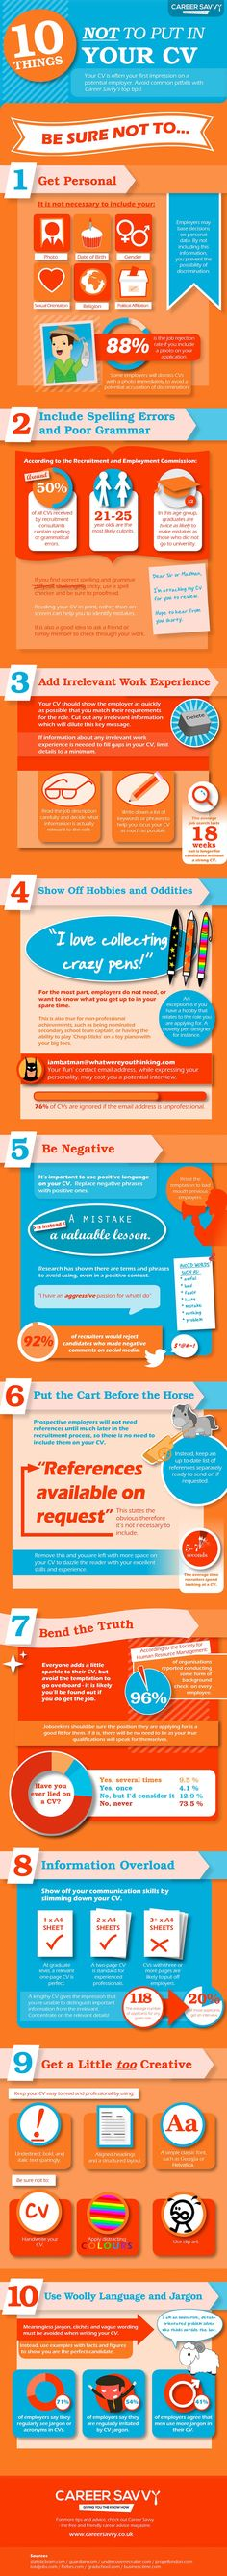 How To Write a CV #Infographic Cv infographic, Infographic and - how to write cv resume